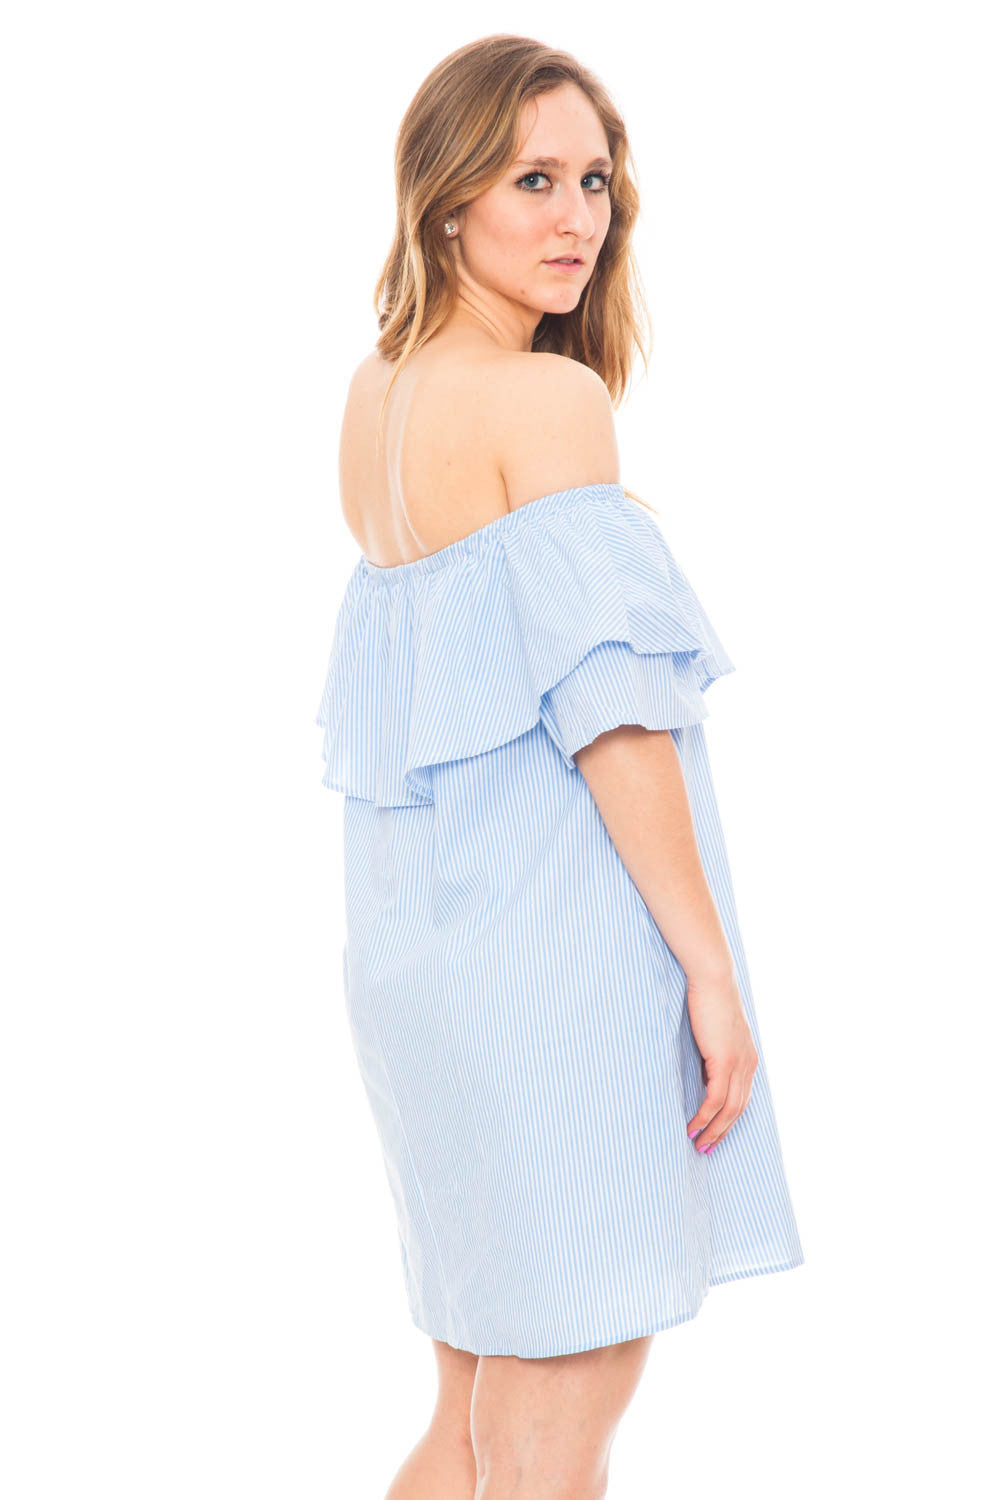 Dress - Off Shoulder Ruffle Dress with Pockets